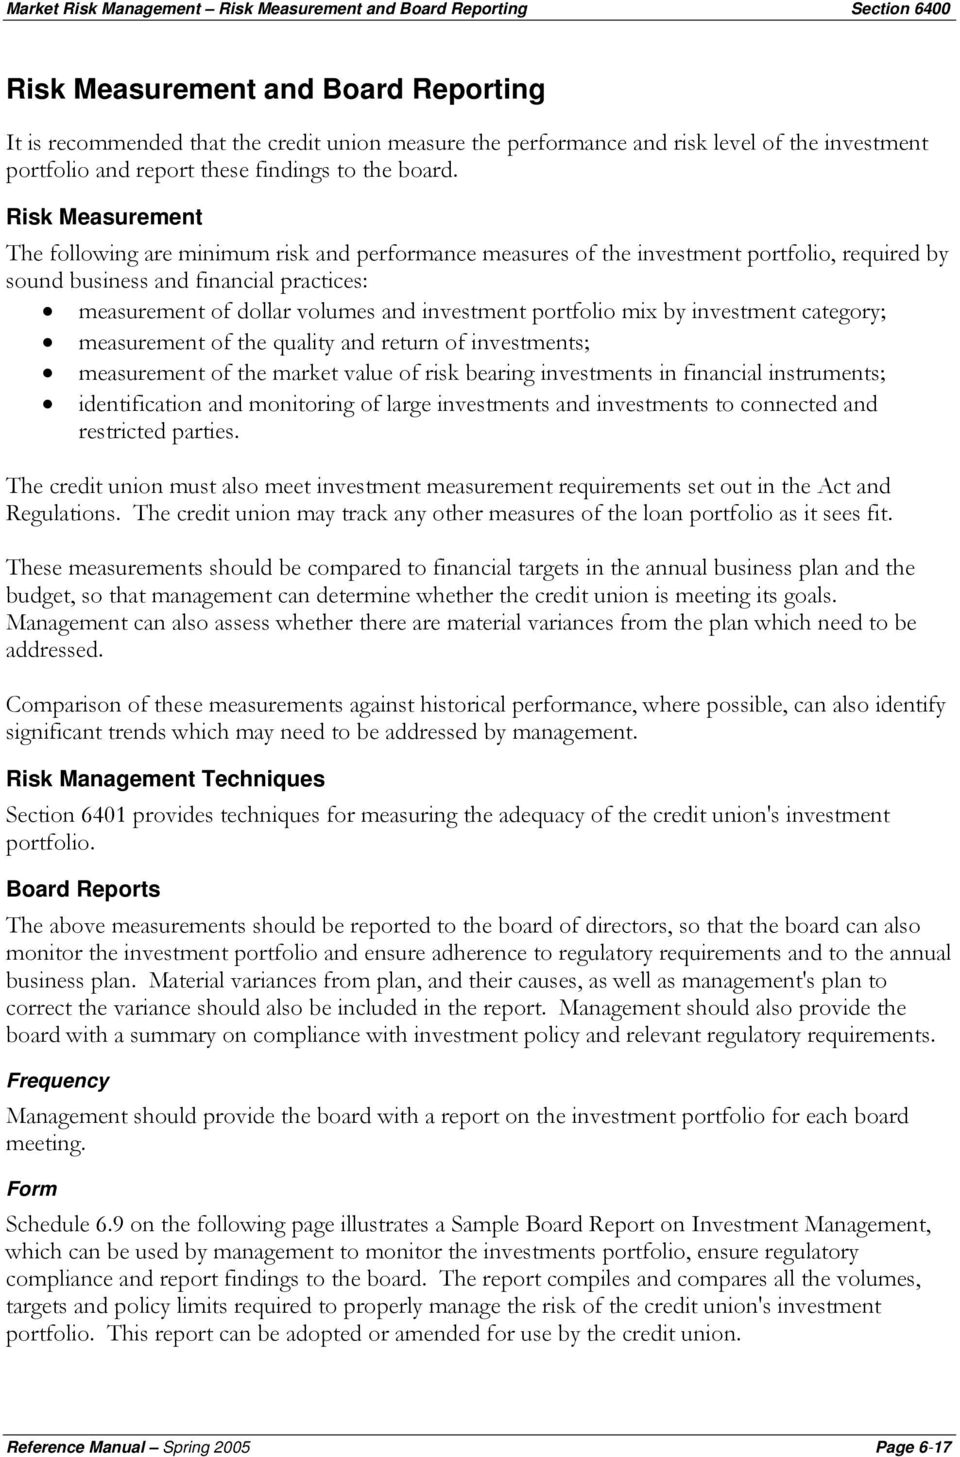 Risk Measurement The following are minimum risk and performance measures of the investment portfolio, required by sound business and financial practices: measurement of dollar volumes and investment